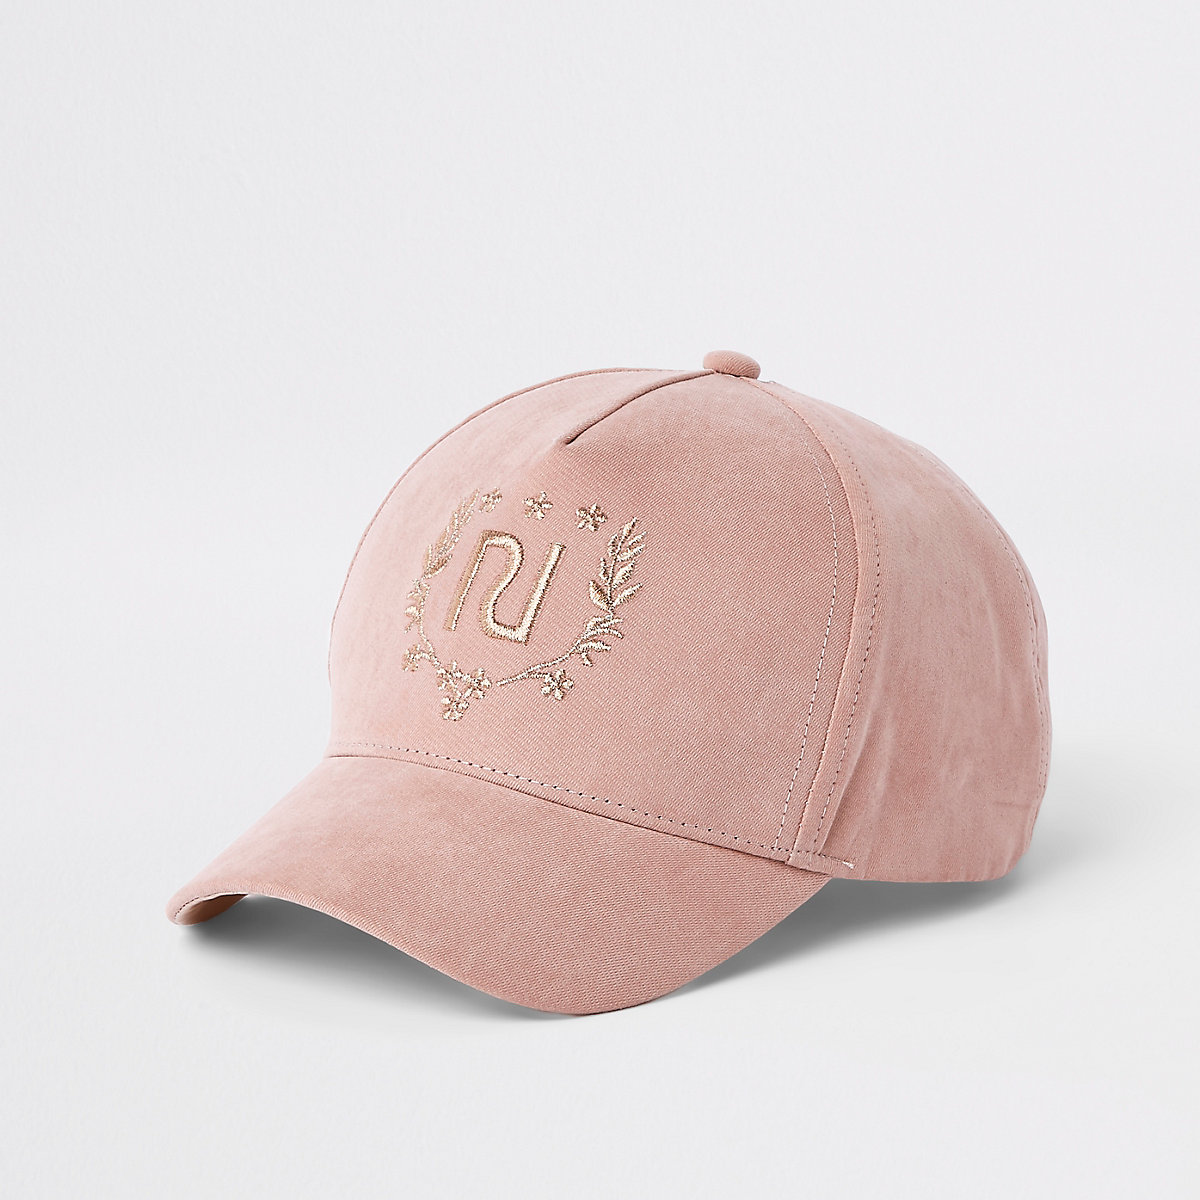 Girls pink RI crest baseball cap